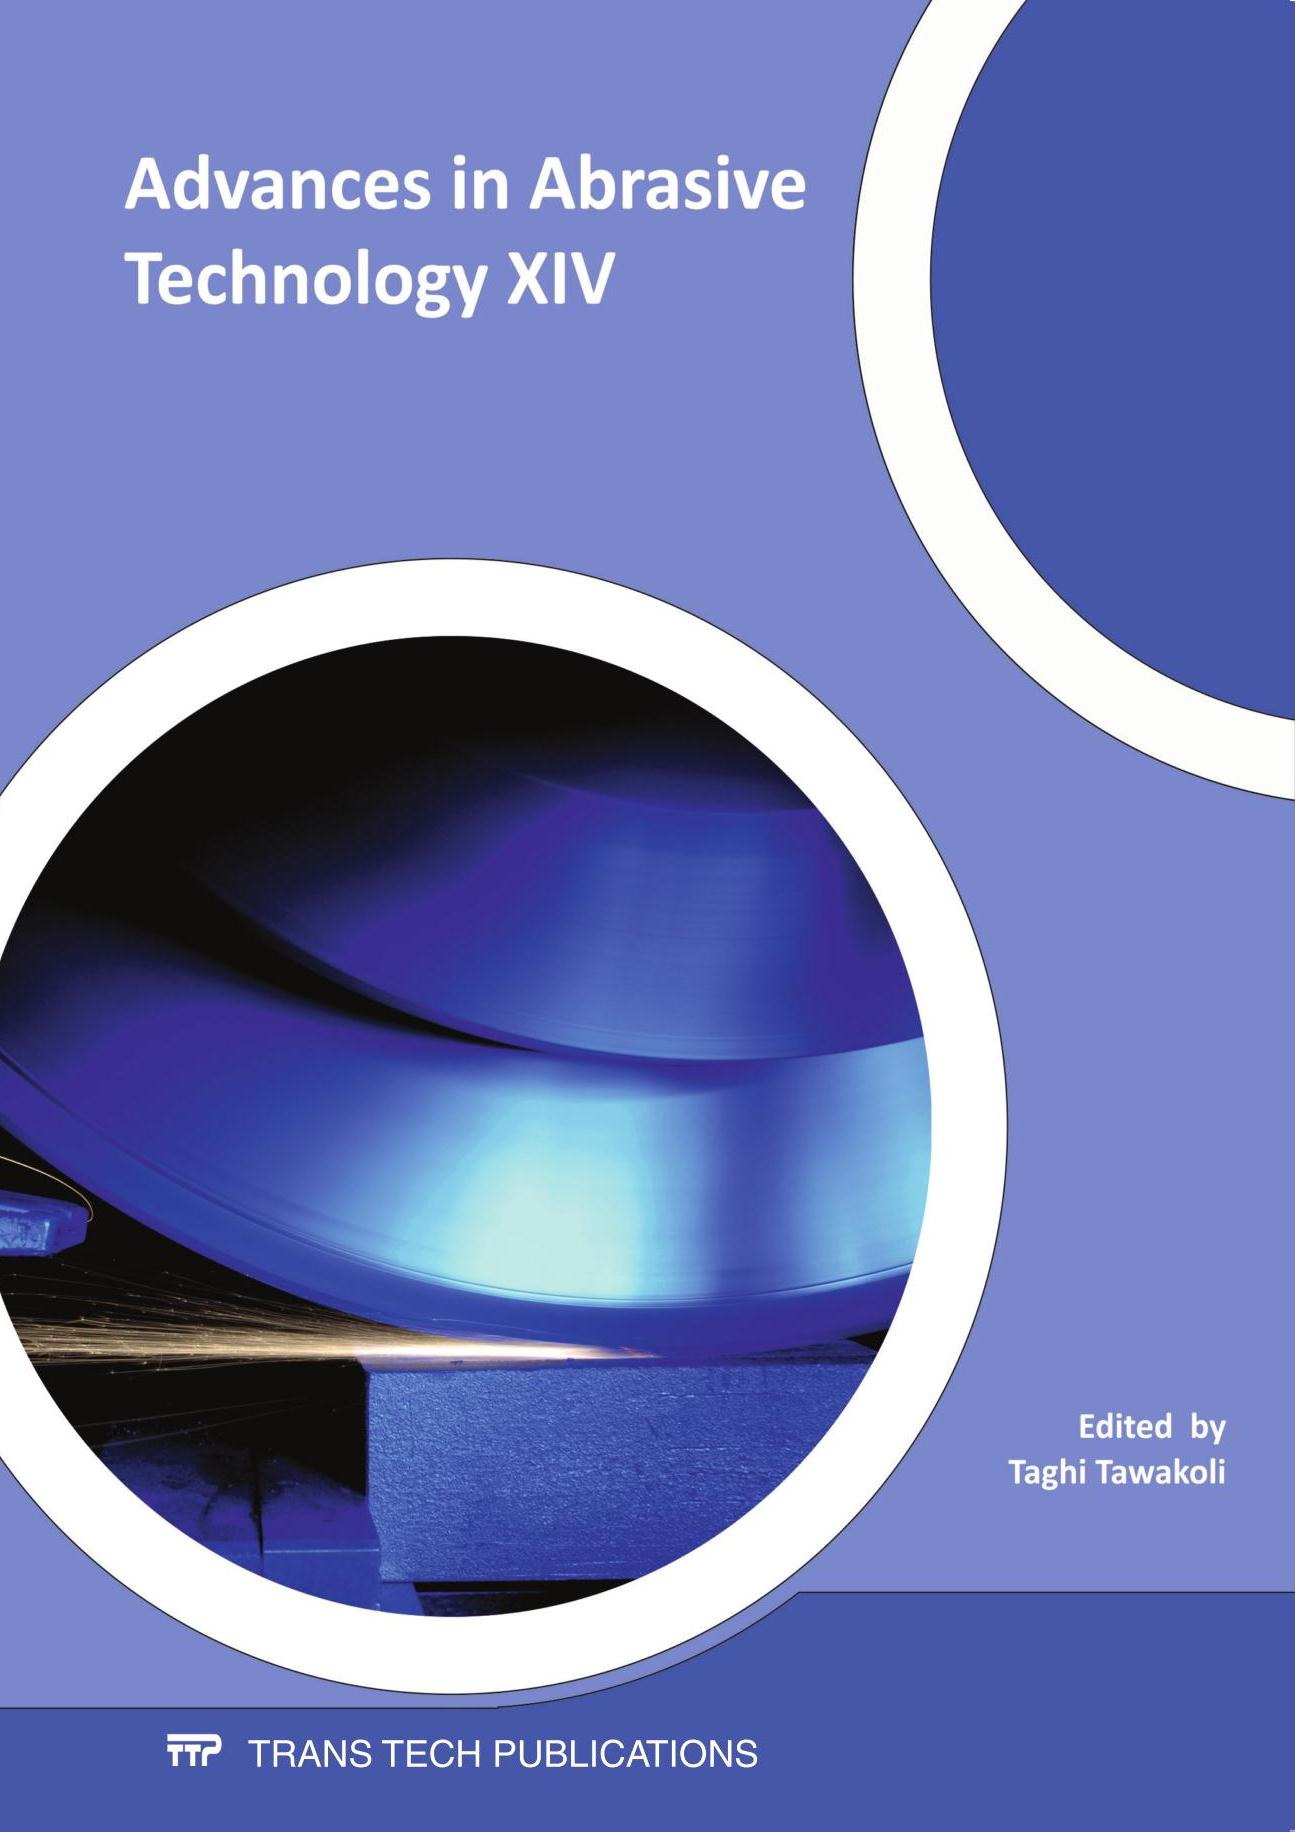 Advances in Abrasive Technology XIV